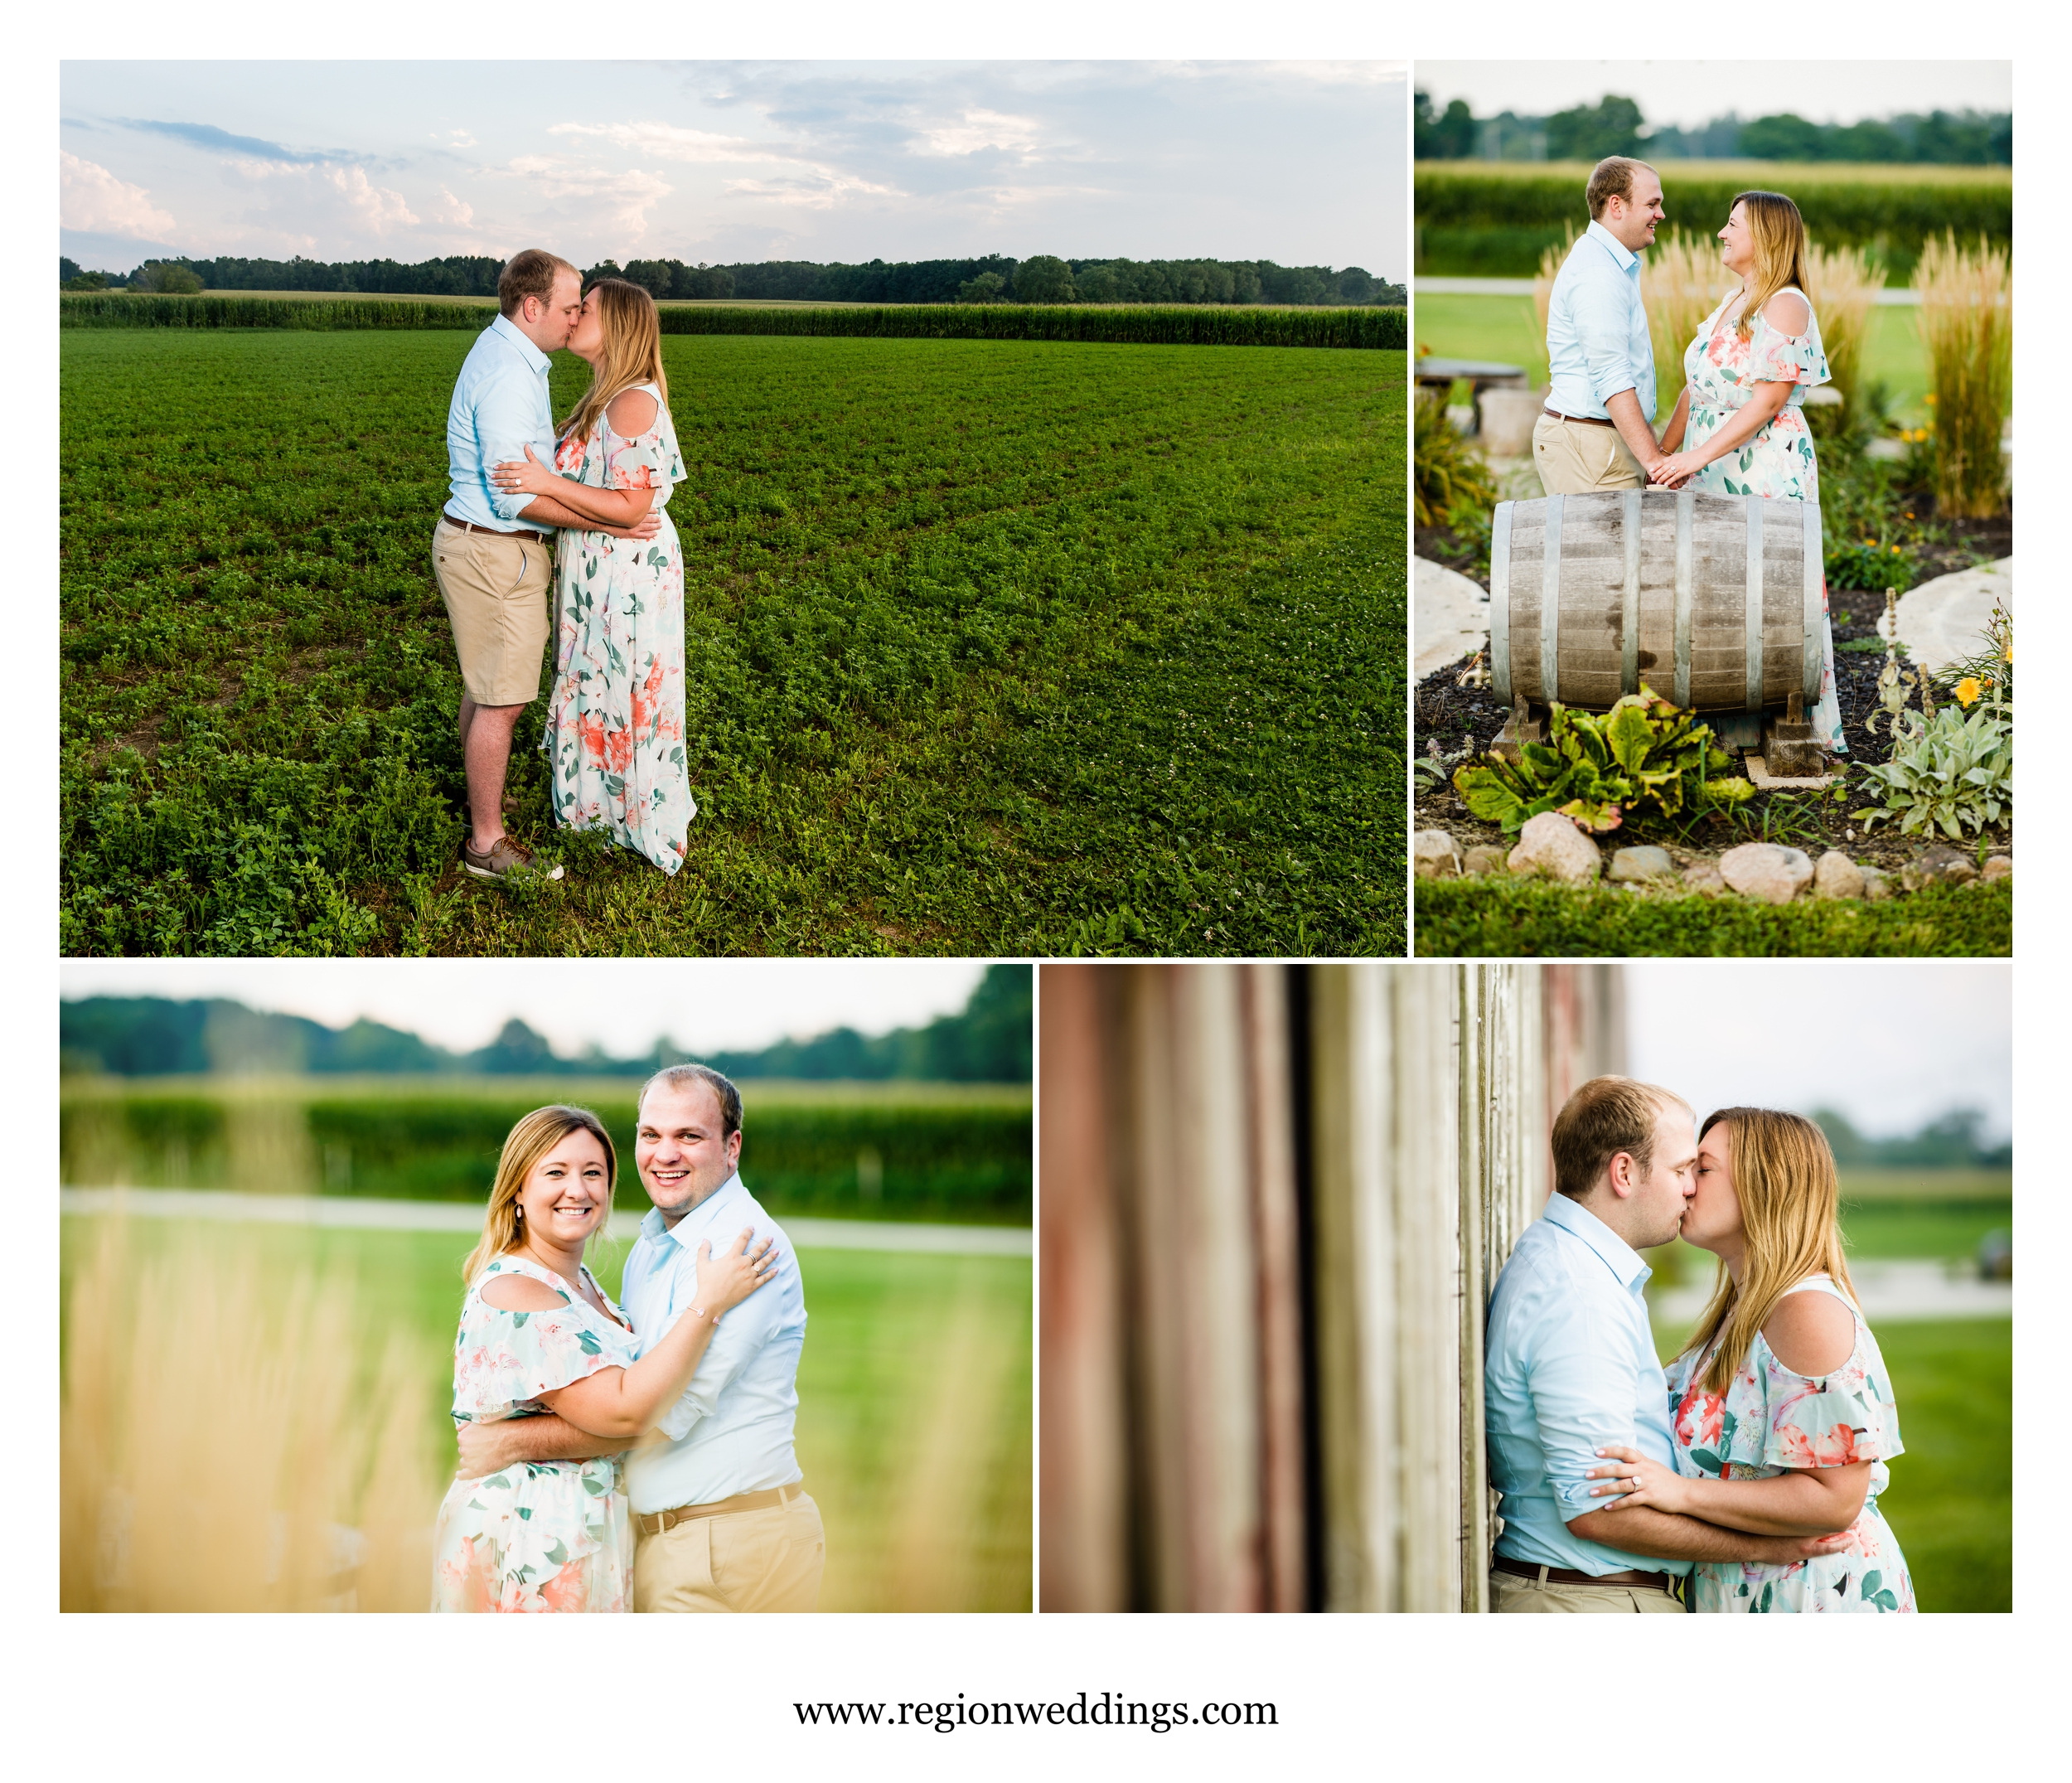 Engagement photos on Indiana farmland.